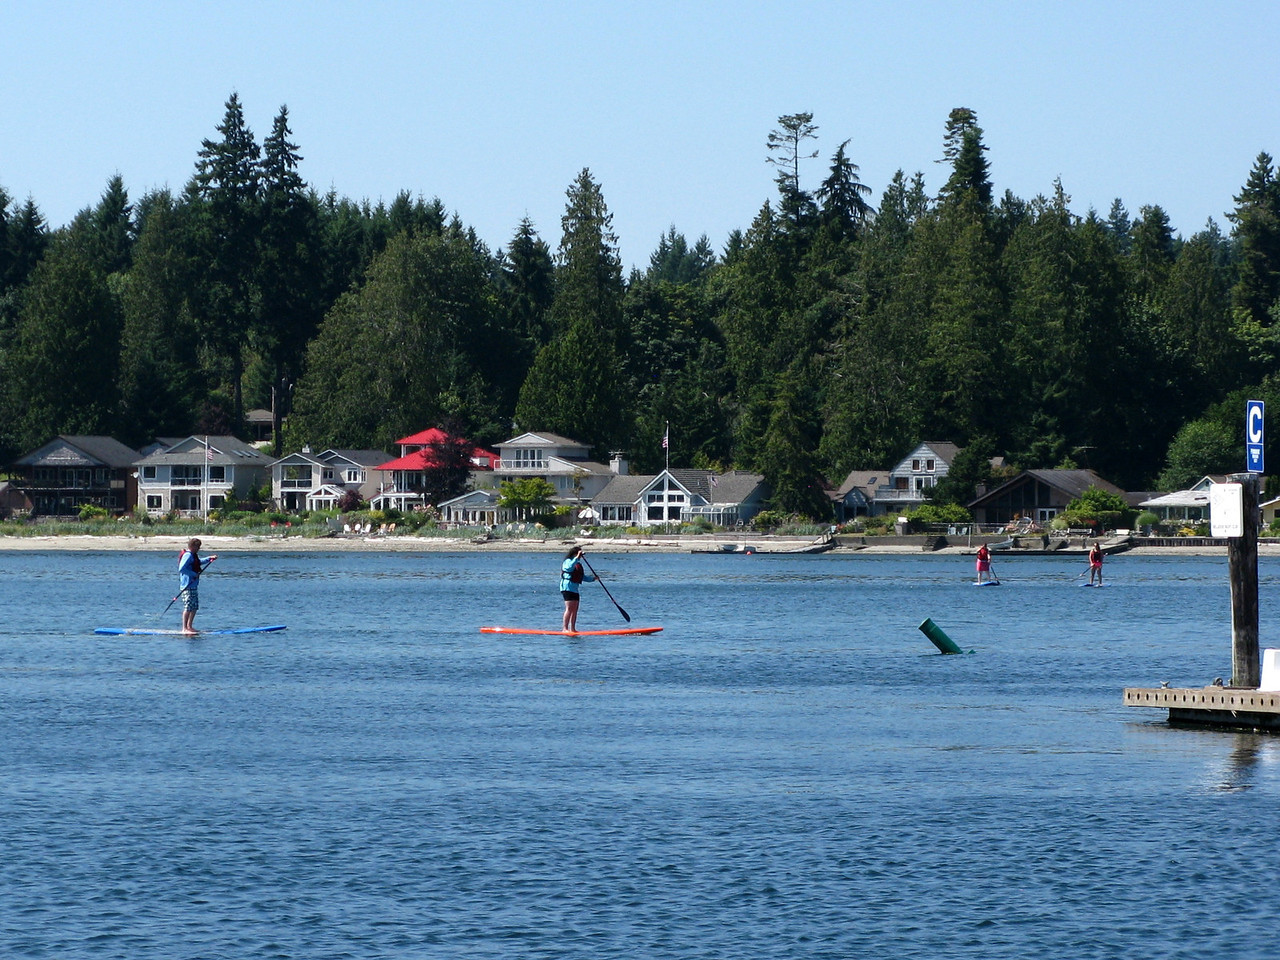 Paddling on boards on the bay at Kingston.